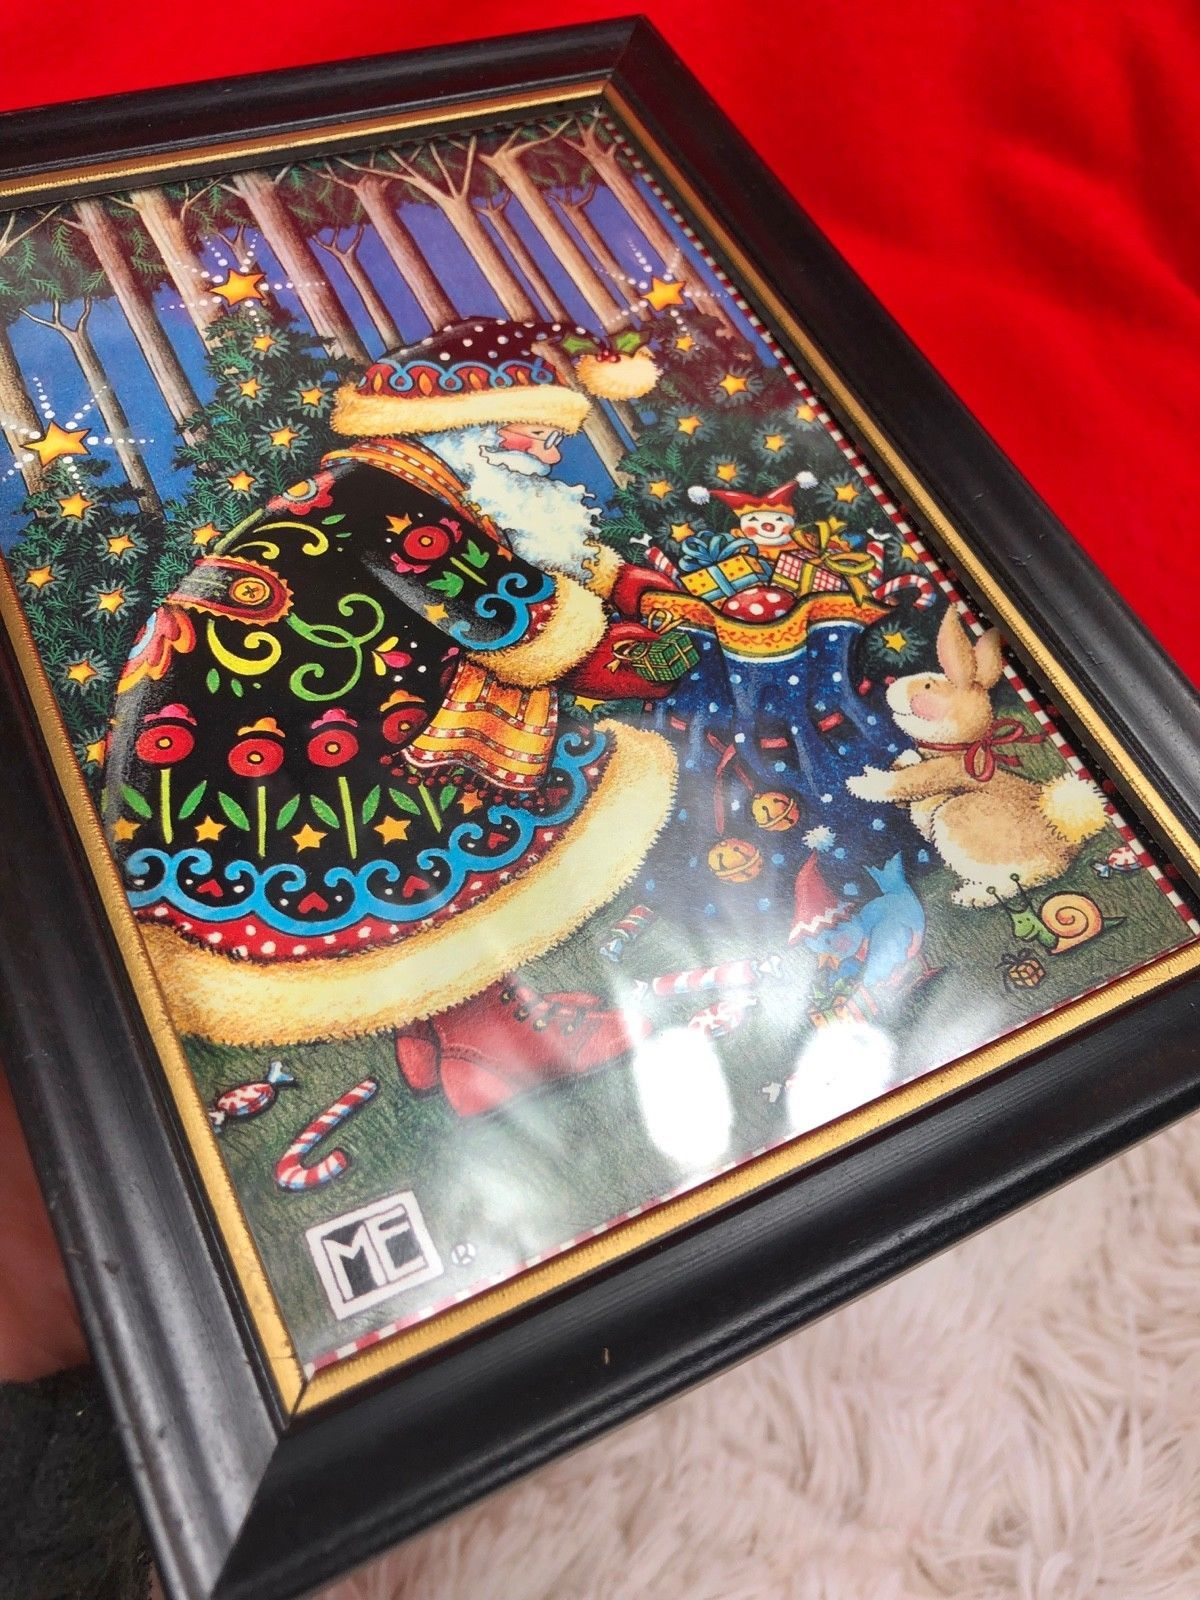 """MARY ENGELBREIT CHRISTMAS ME FRAMED PRINT PICTURE Santa w/ Toy Sack 7.5""""x5.5"""" image 4"""